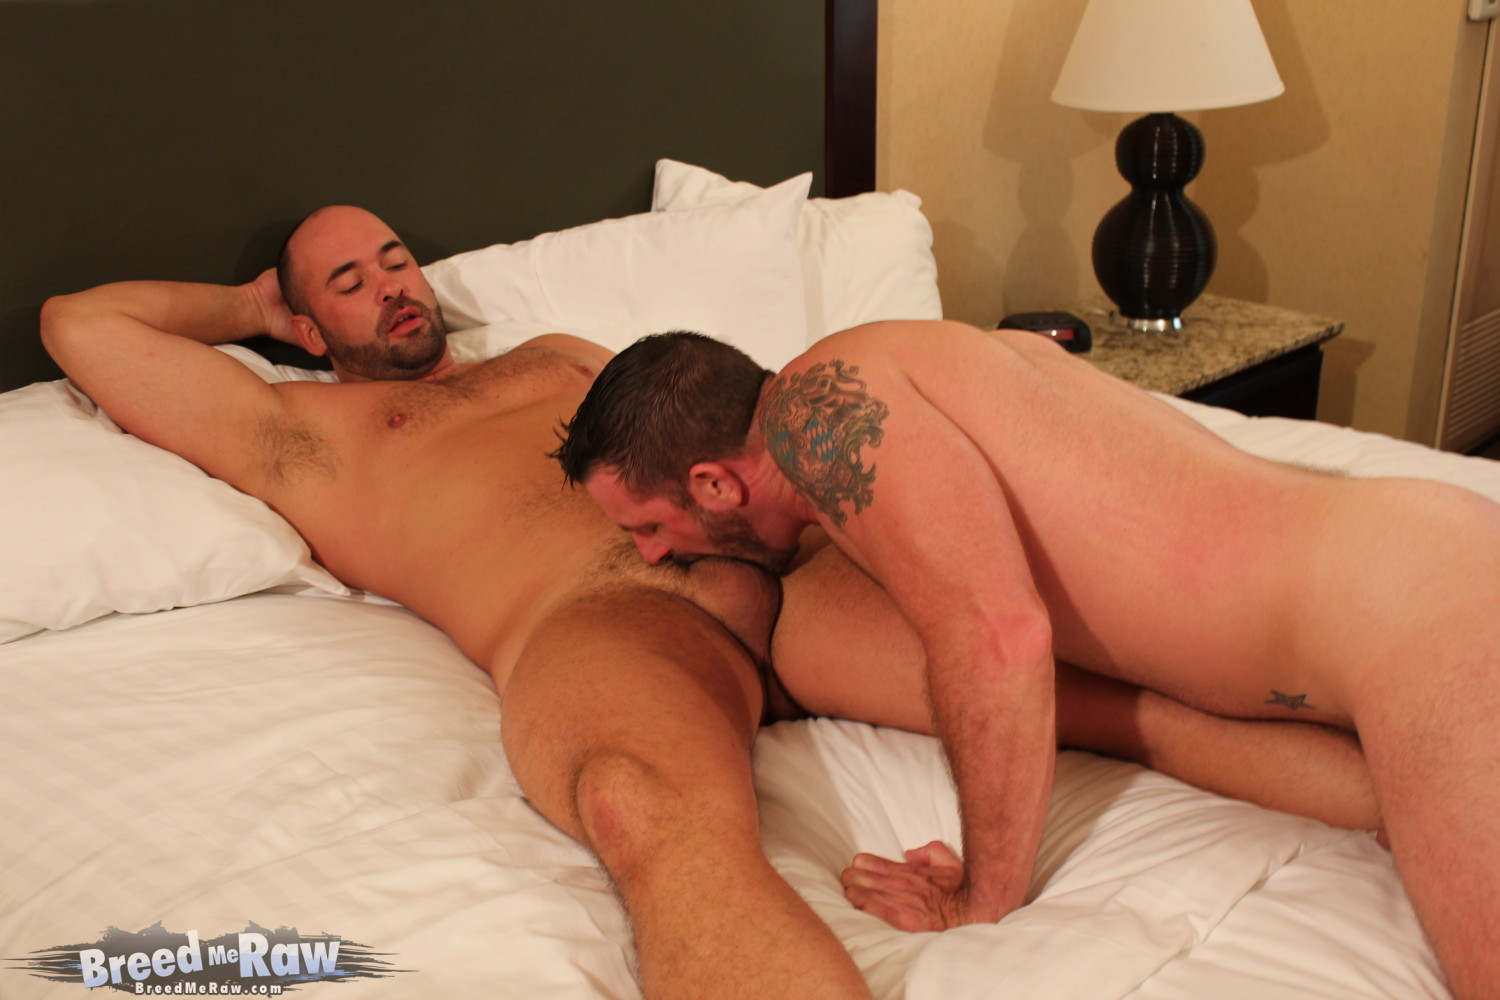 Breed Me Raw Tyler Reed and Morgan Black 01 Amateur Hung Muscle Studs Rimming and Barebacking